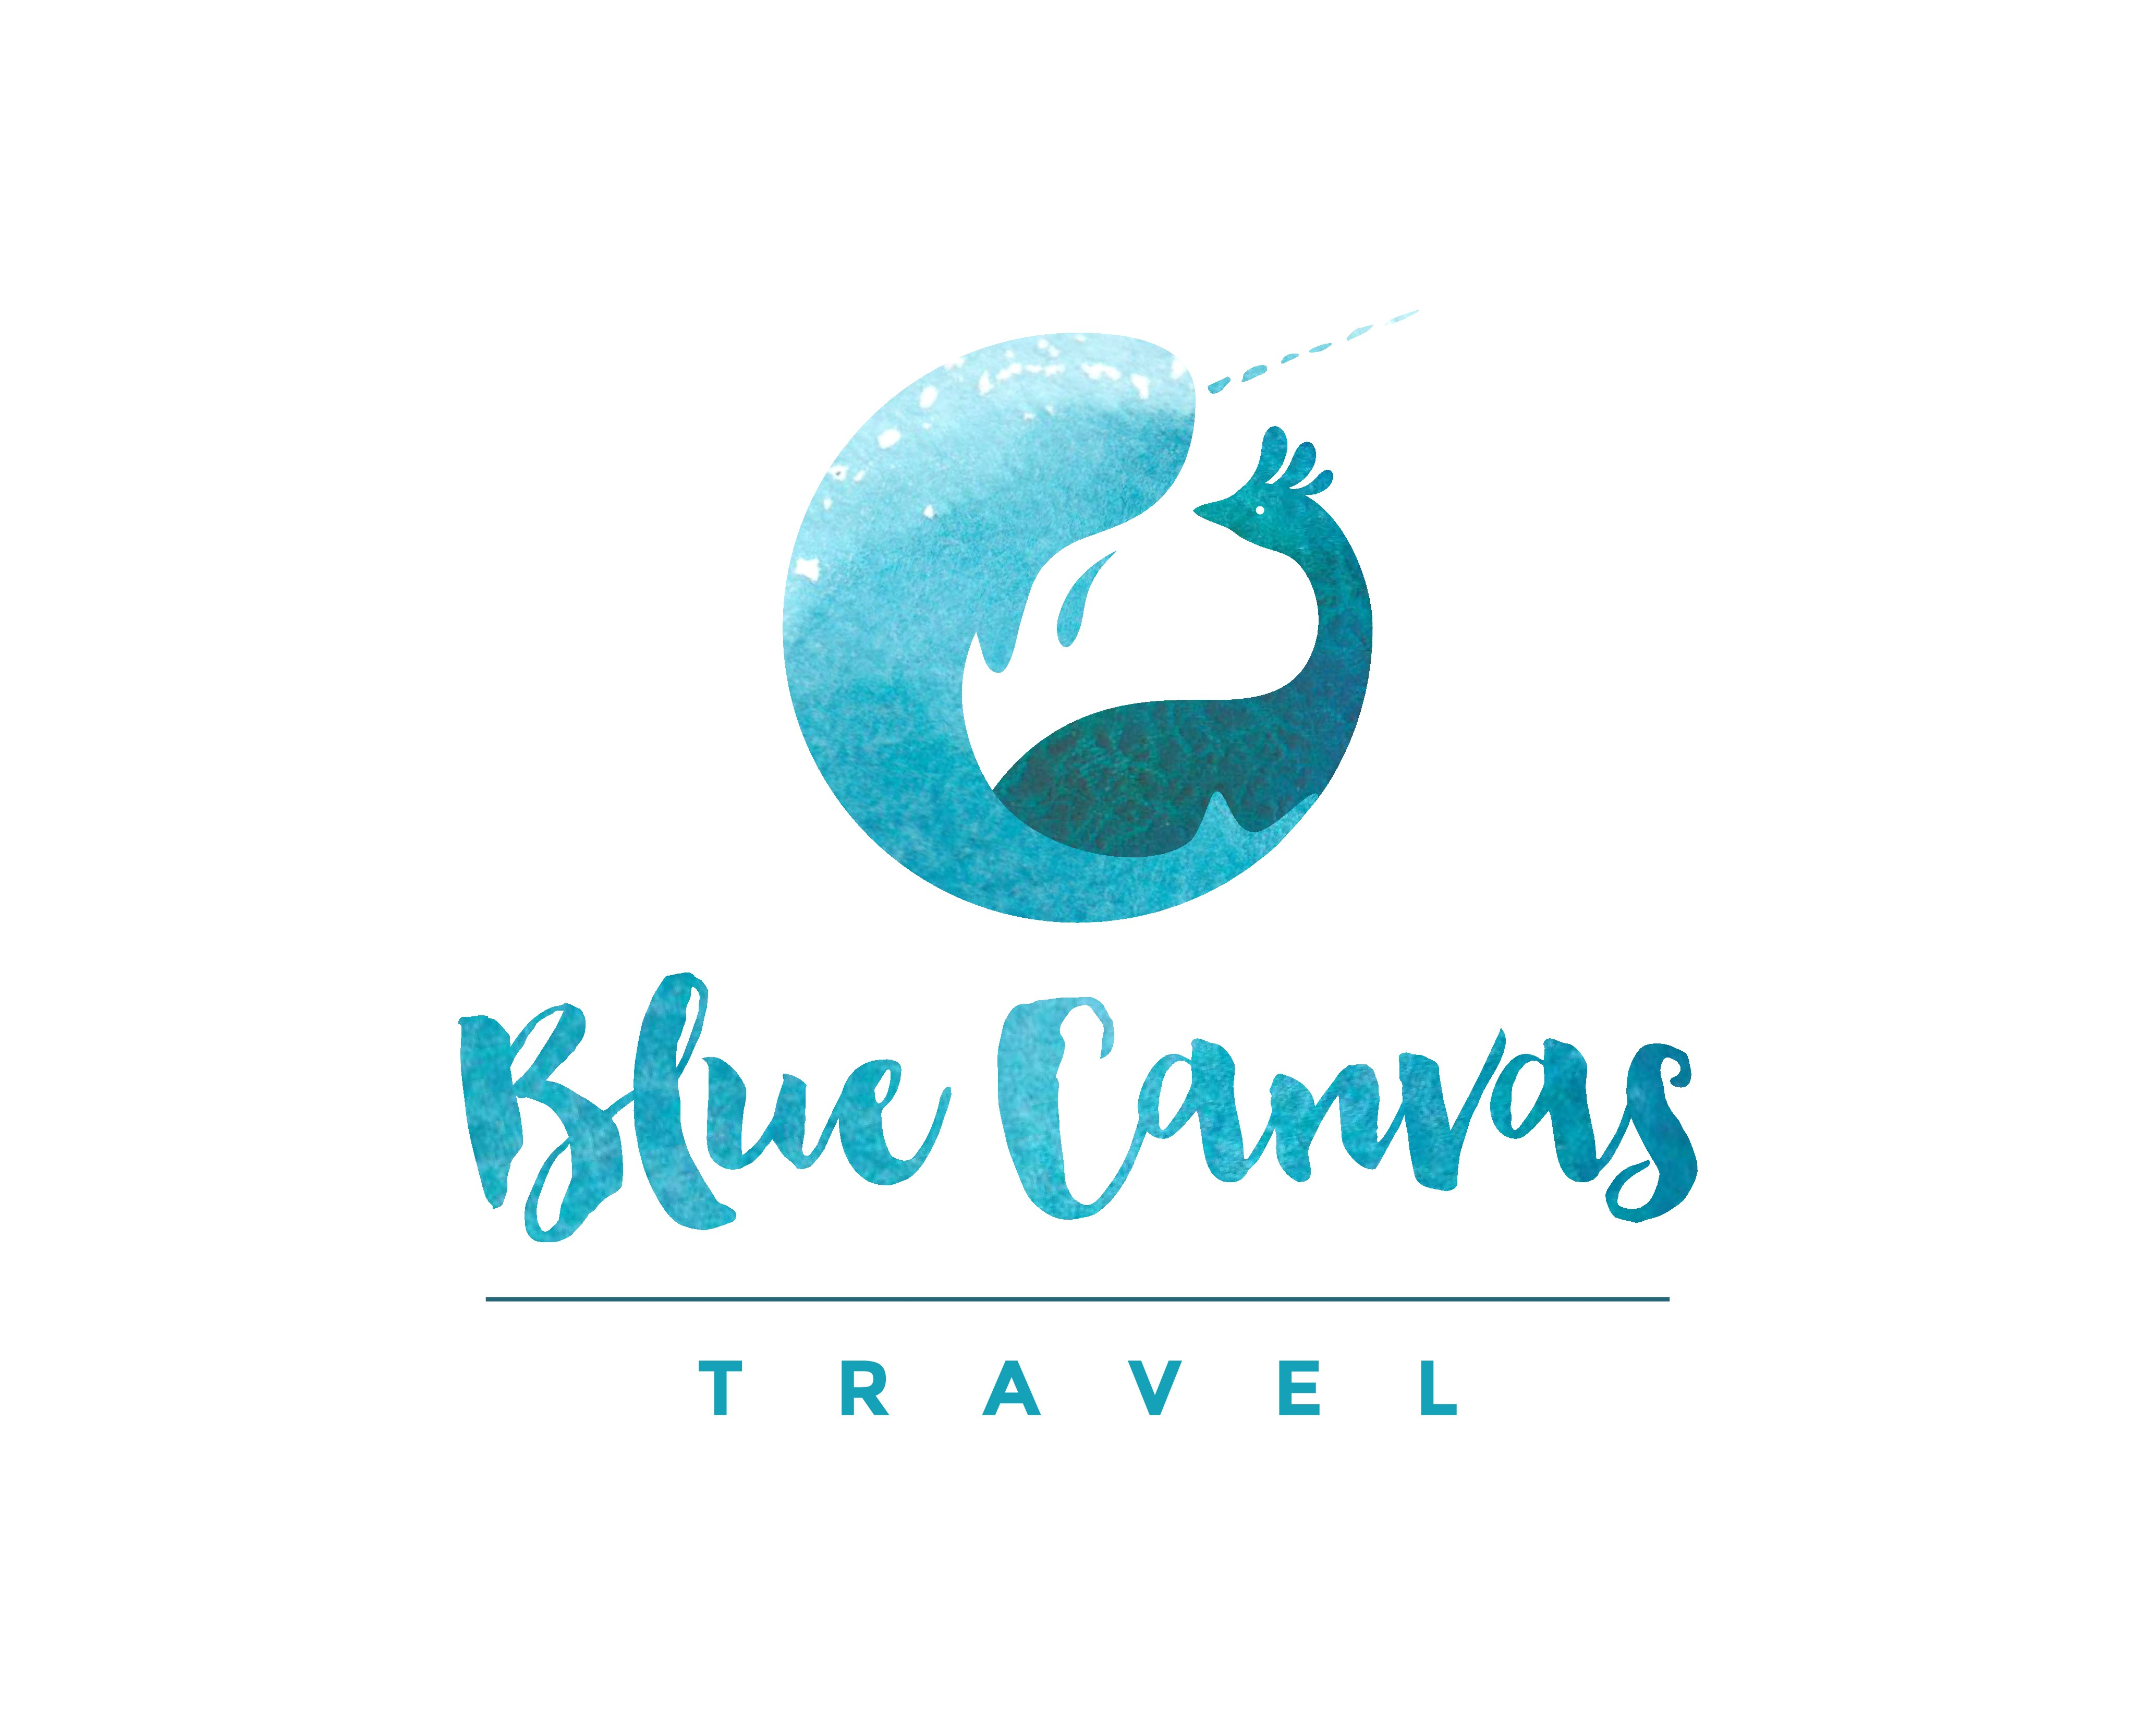 Create an iconic logo and design a website for Blue Canvas Travel